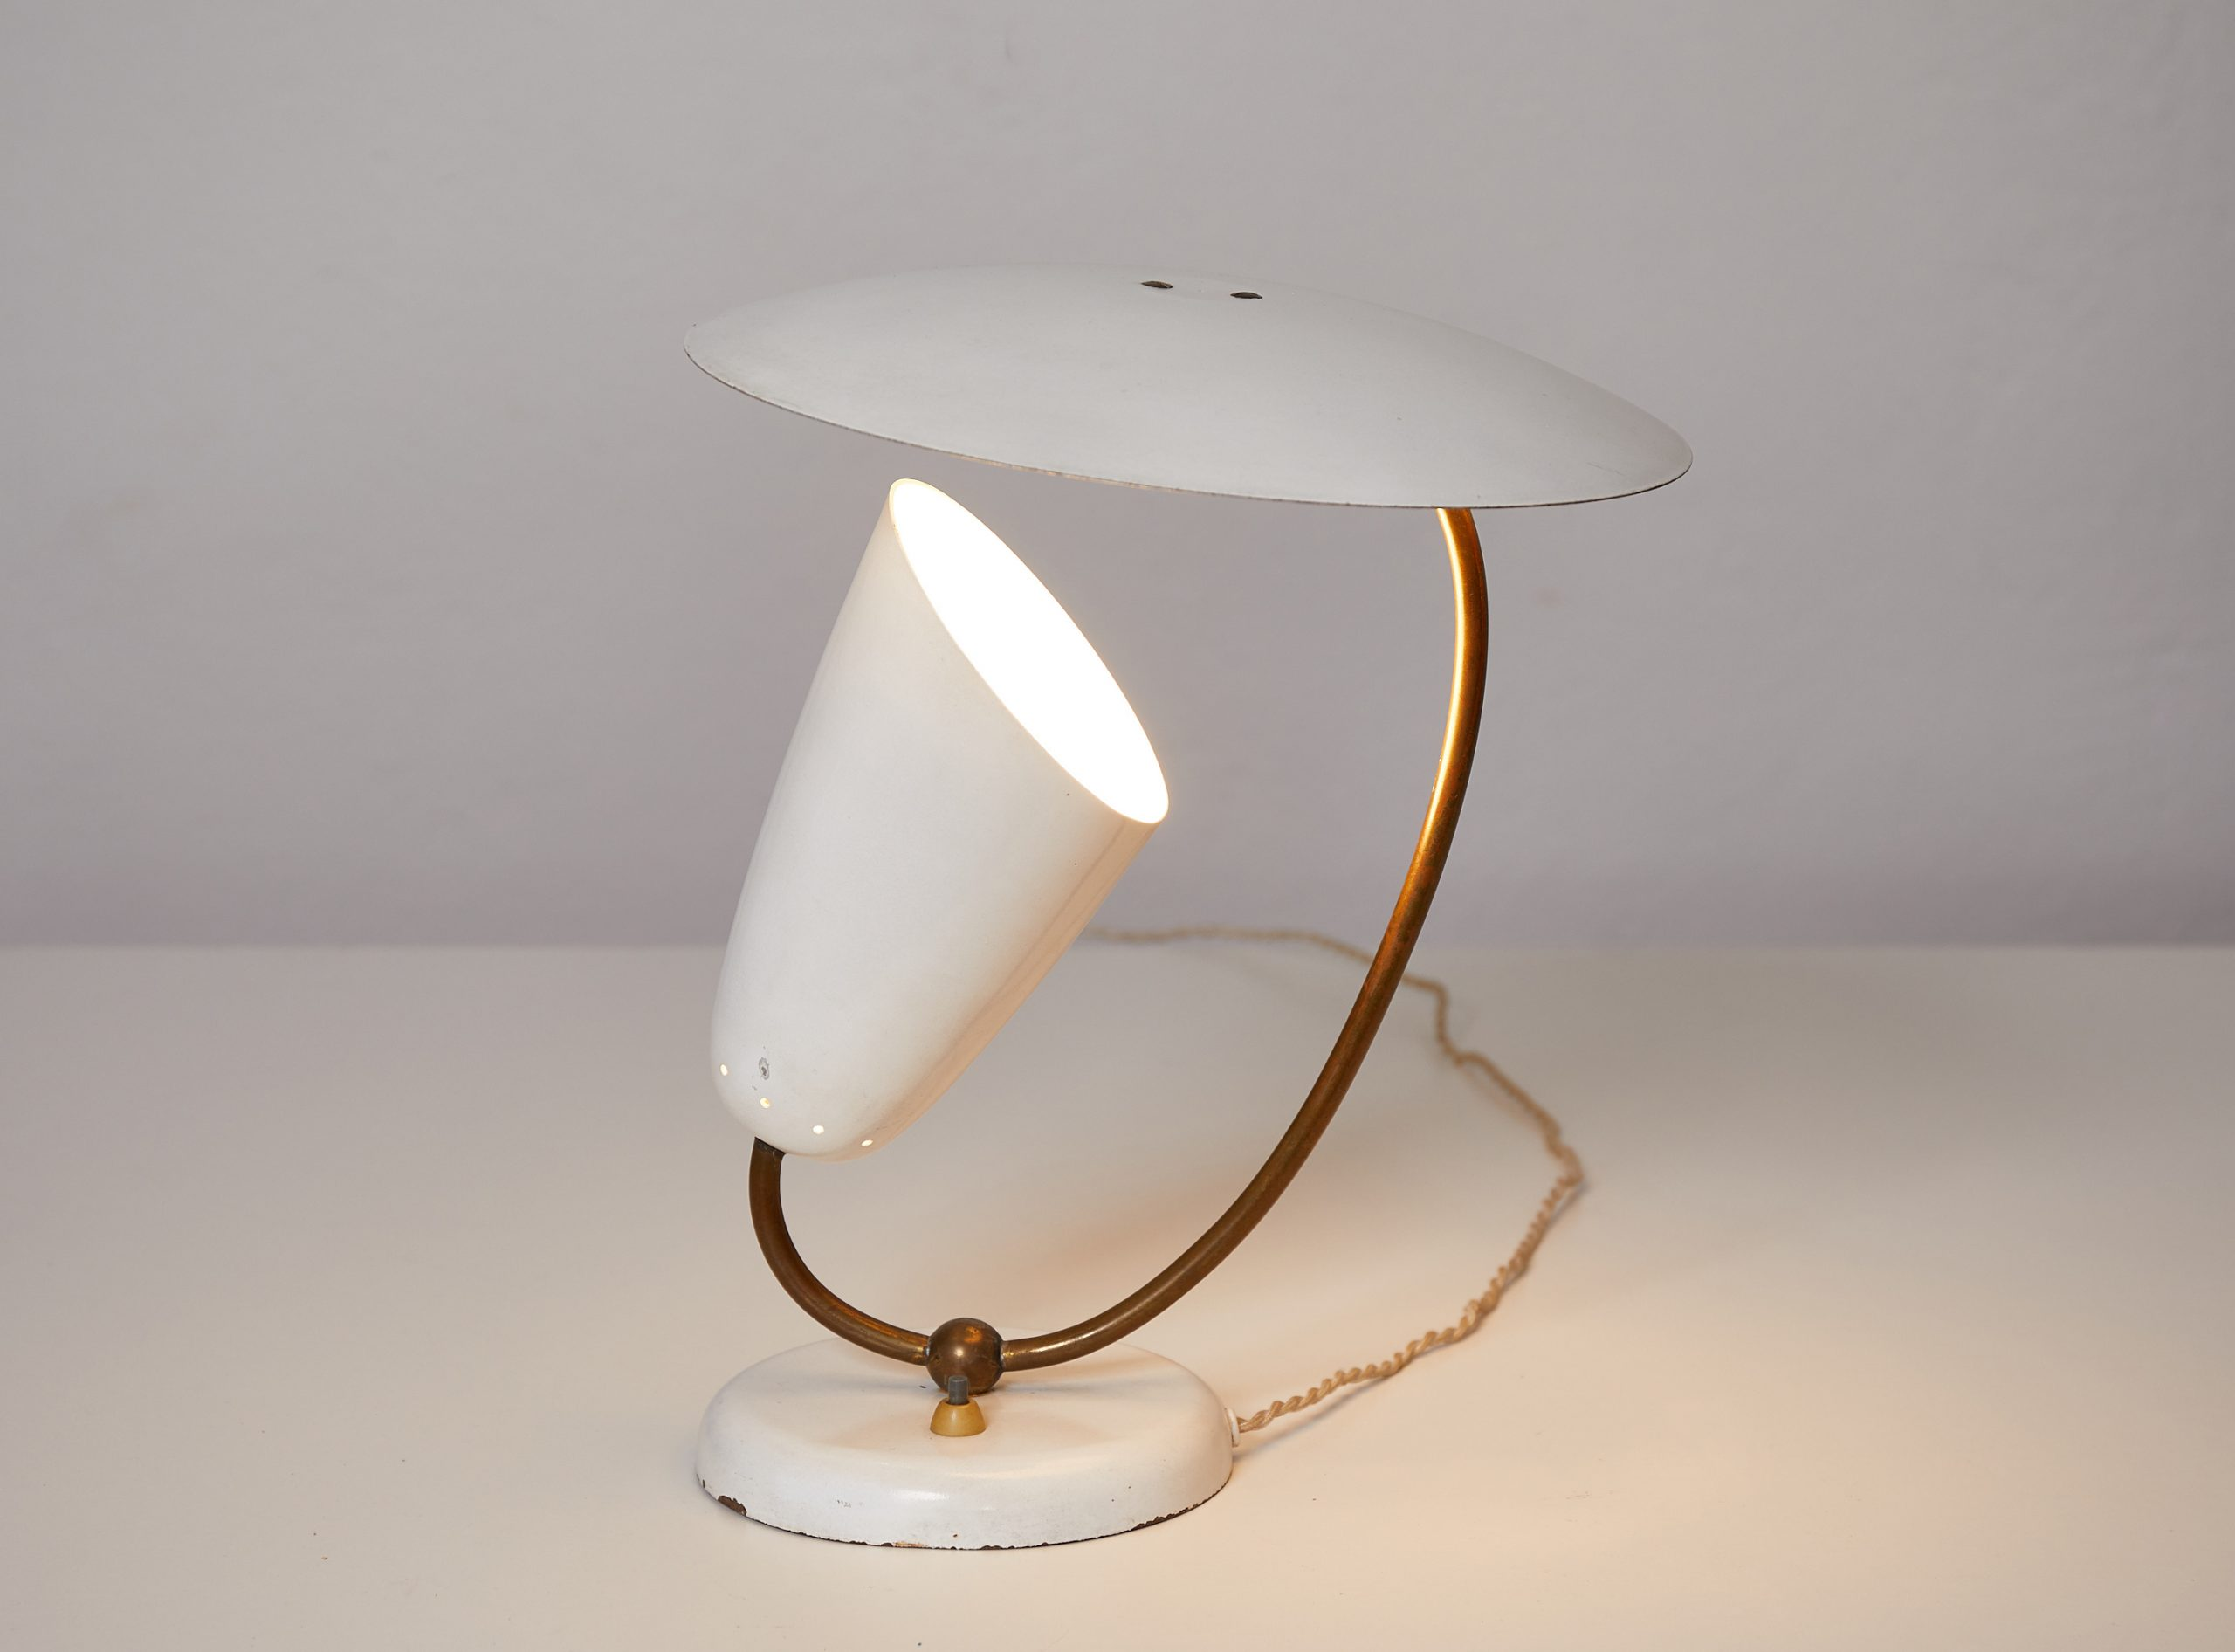 brass-and-enameled-metal-table-lamp-switzerland-1950-image-01